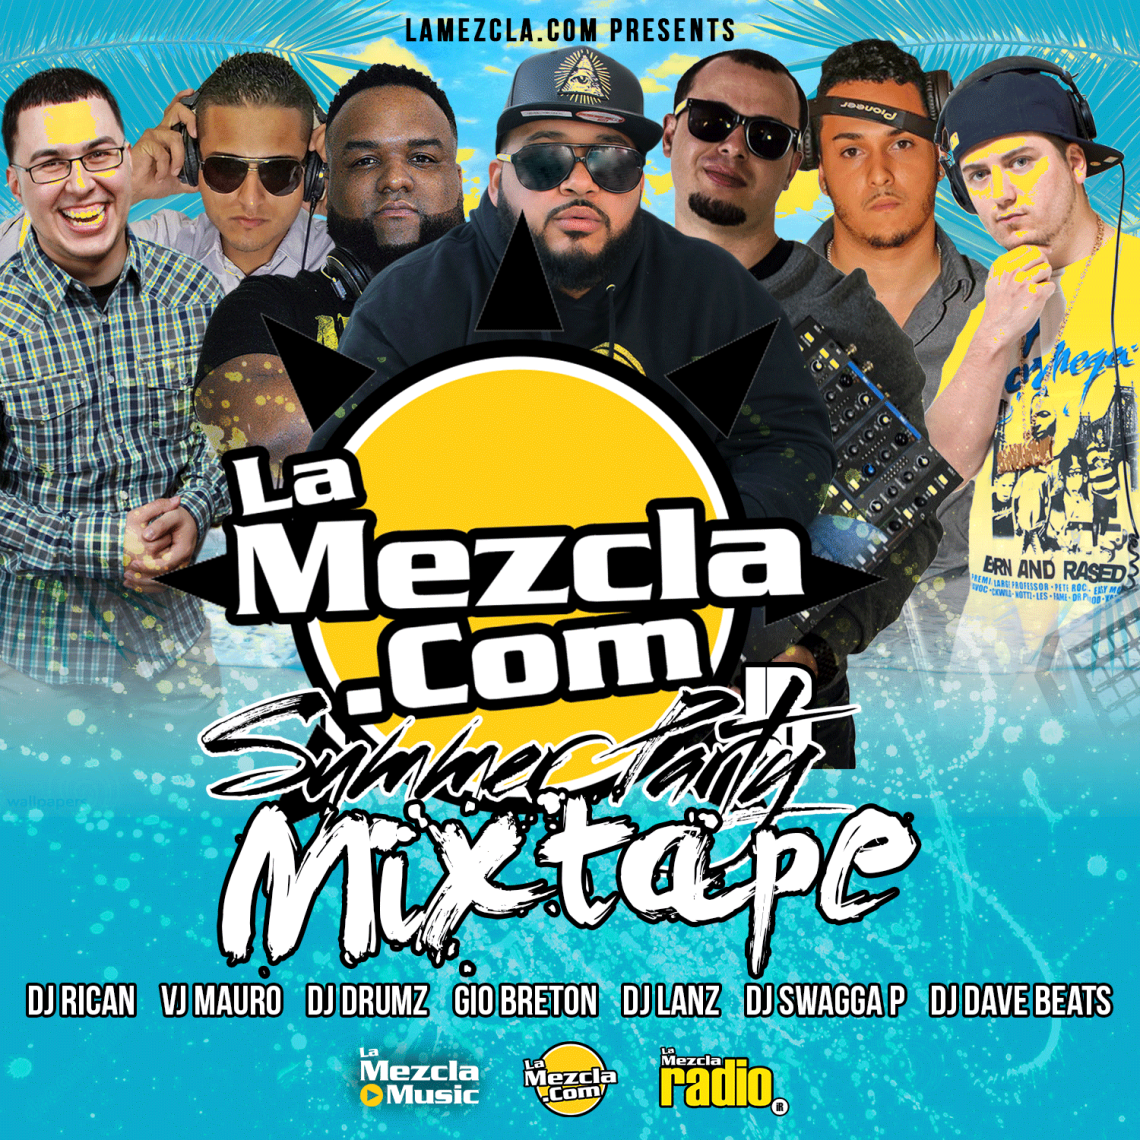 Lamezcla-summer-party17-mixtape